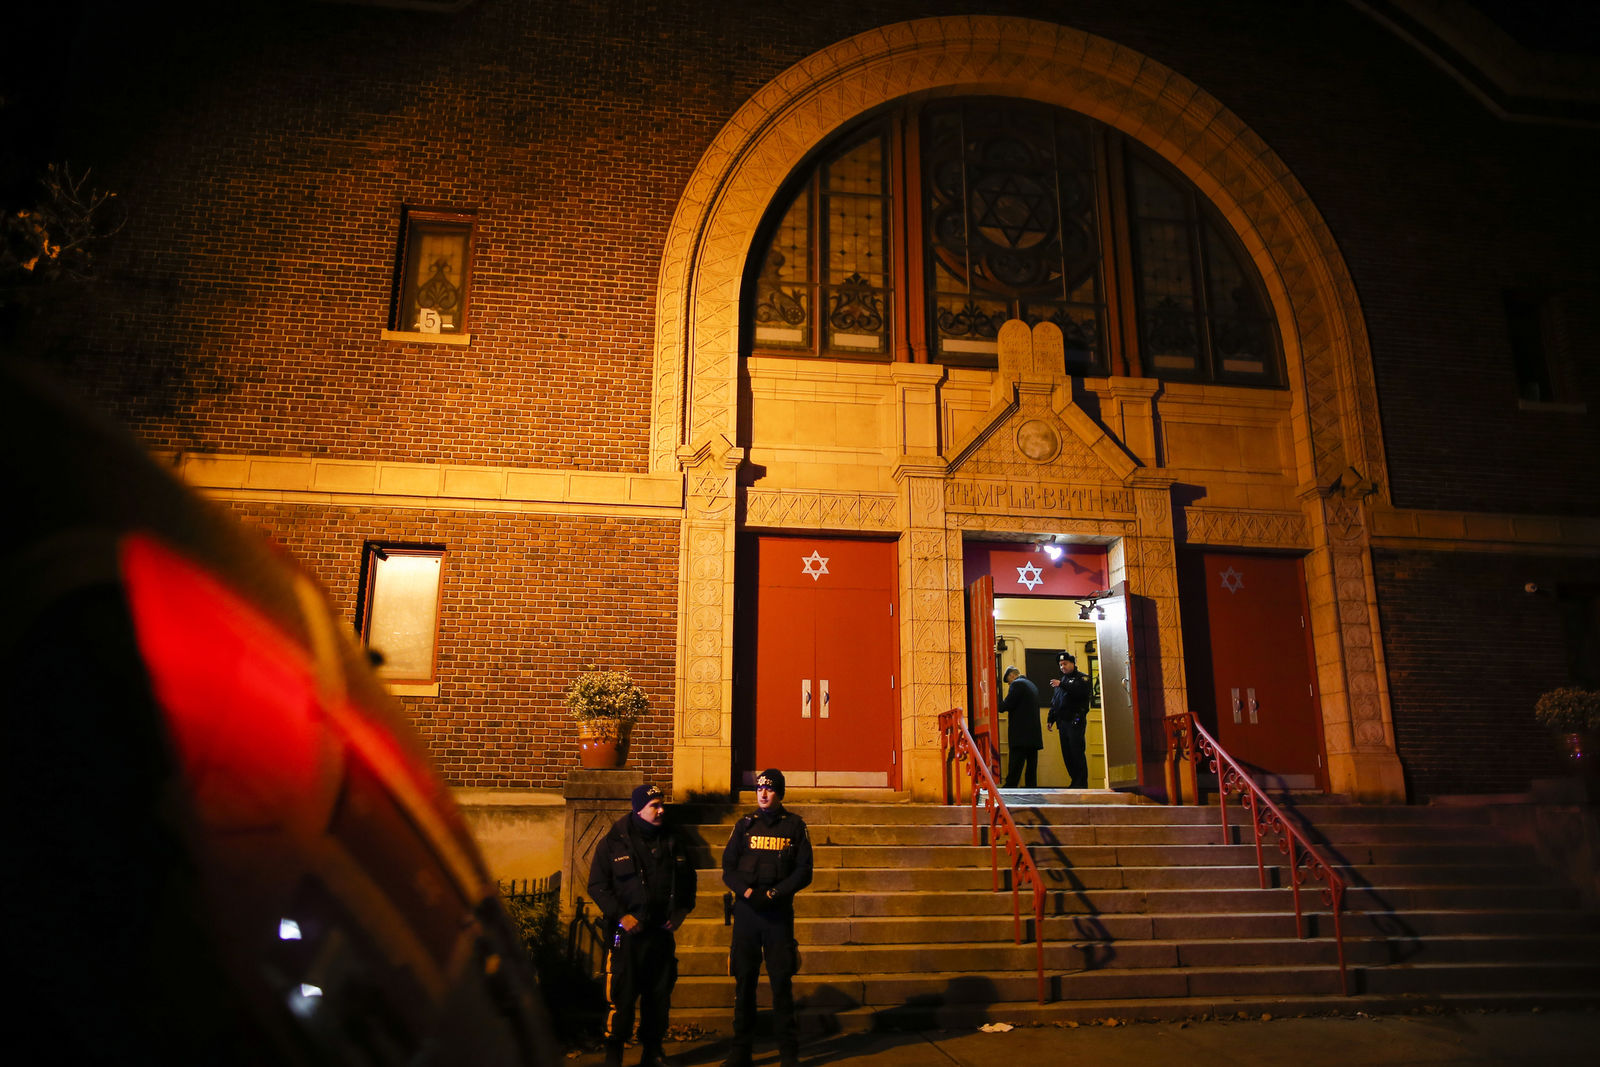 Officers stand outside of a vigil for the victims of a shooting in Jersey City, N.J., Wednesday, Dec. 11, 2019. Fears that a deadly shooting at a Jewish market  was an anti-Semitic attack mounted as authorities recounted how a man and woman deliberately pulled up to the place in a stolen rental van with at least one rifle and got out firing. (AP Photo/Eduardo Munoz Alvarez)